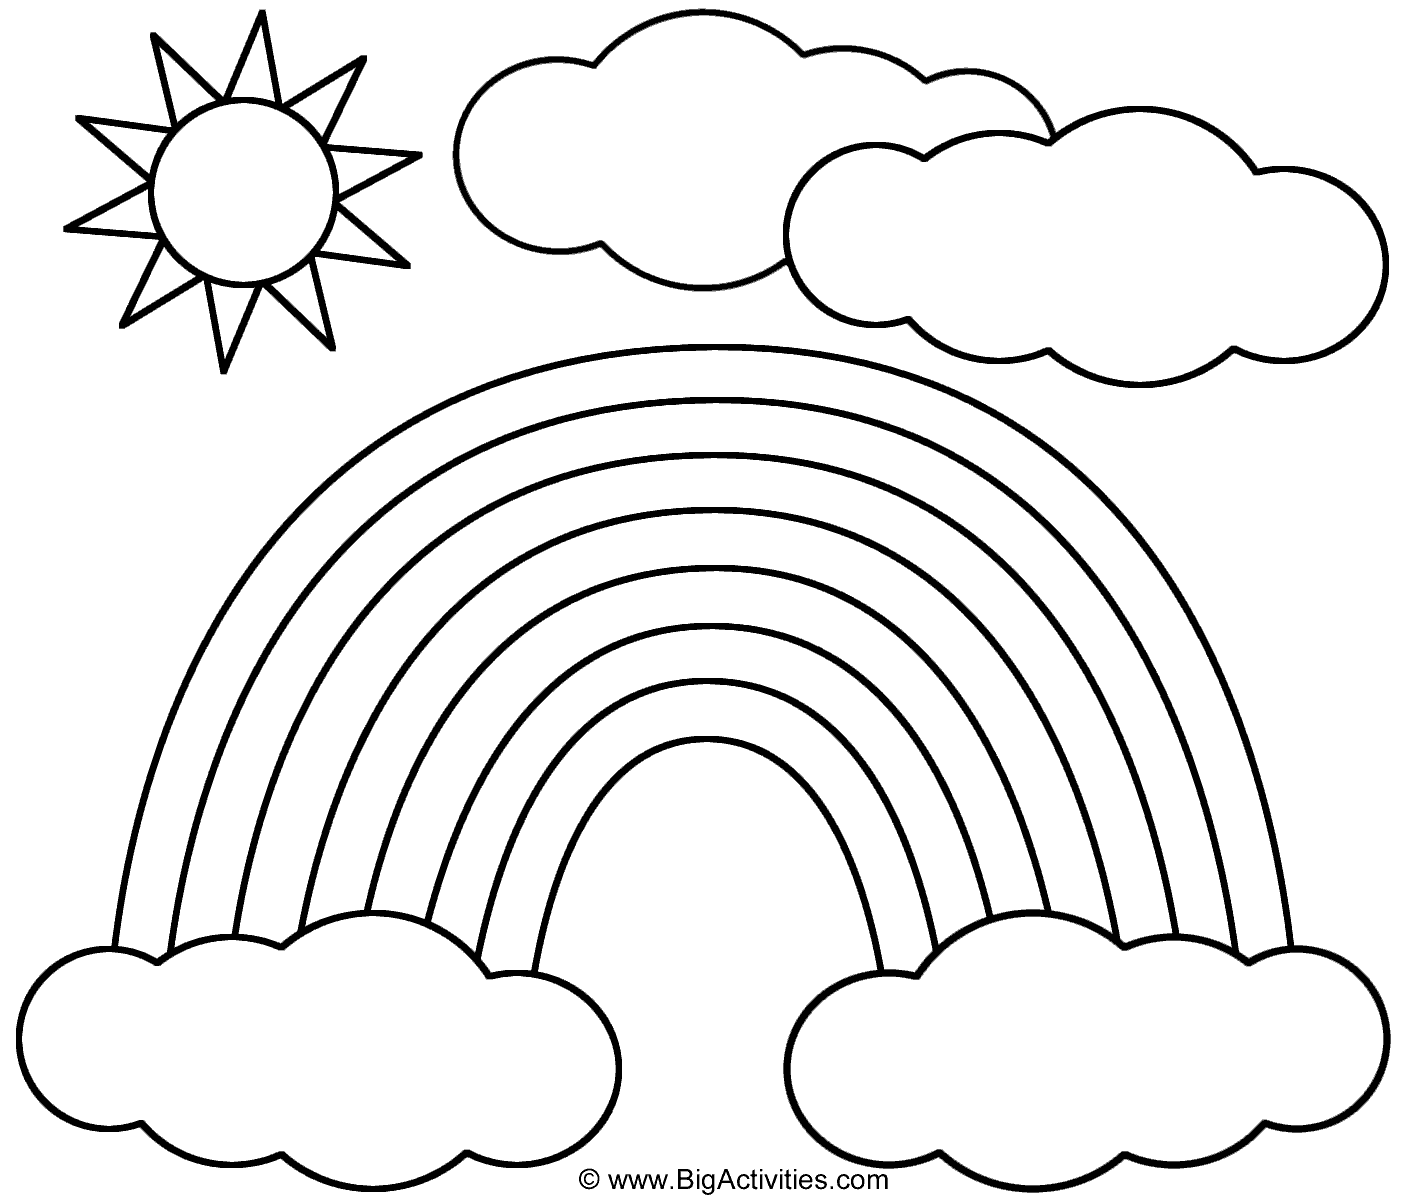 Coloring Page Rainbow Drawing Sun Coloring Pages Kids Printable Coloring Pages